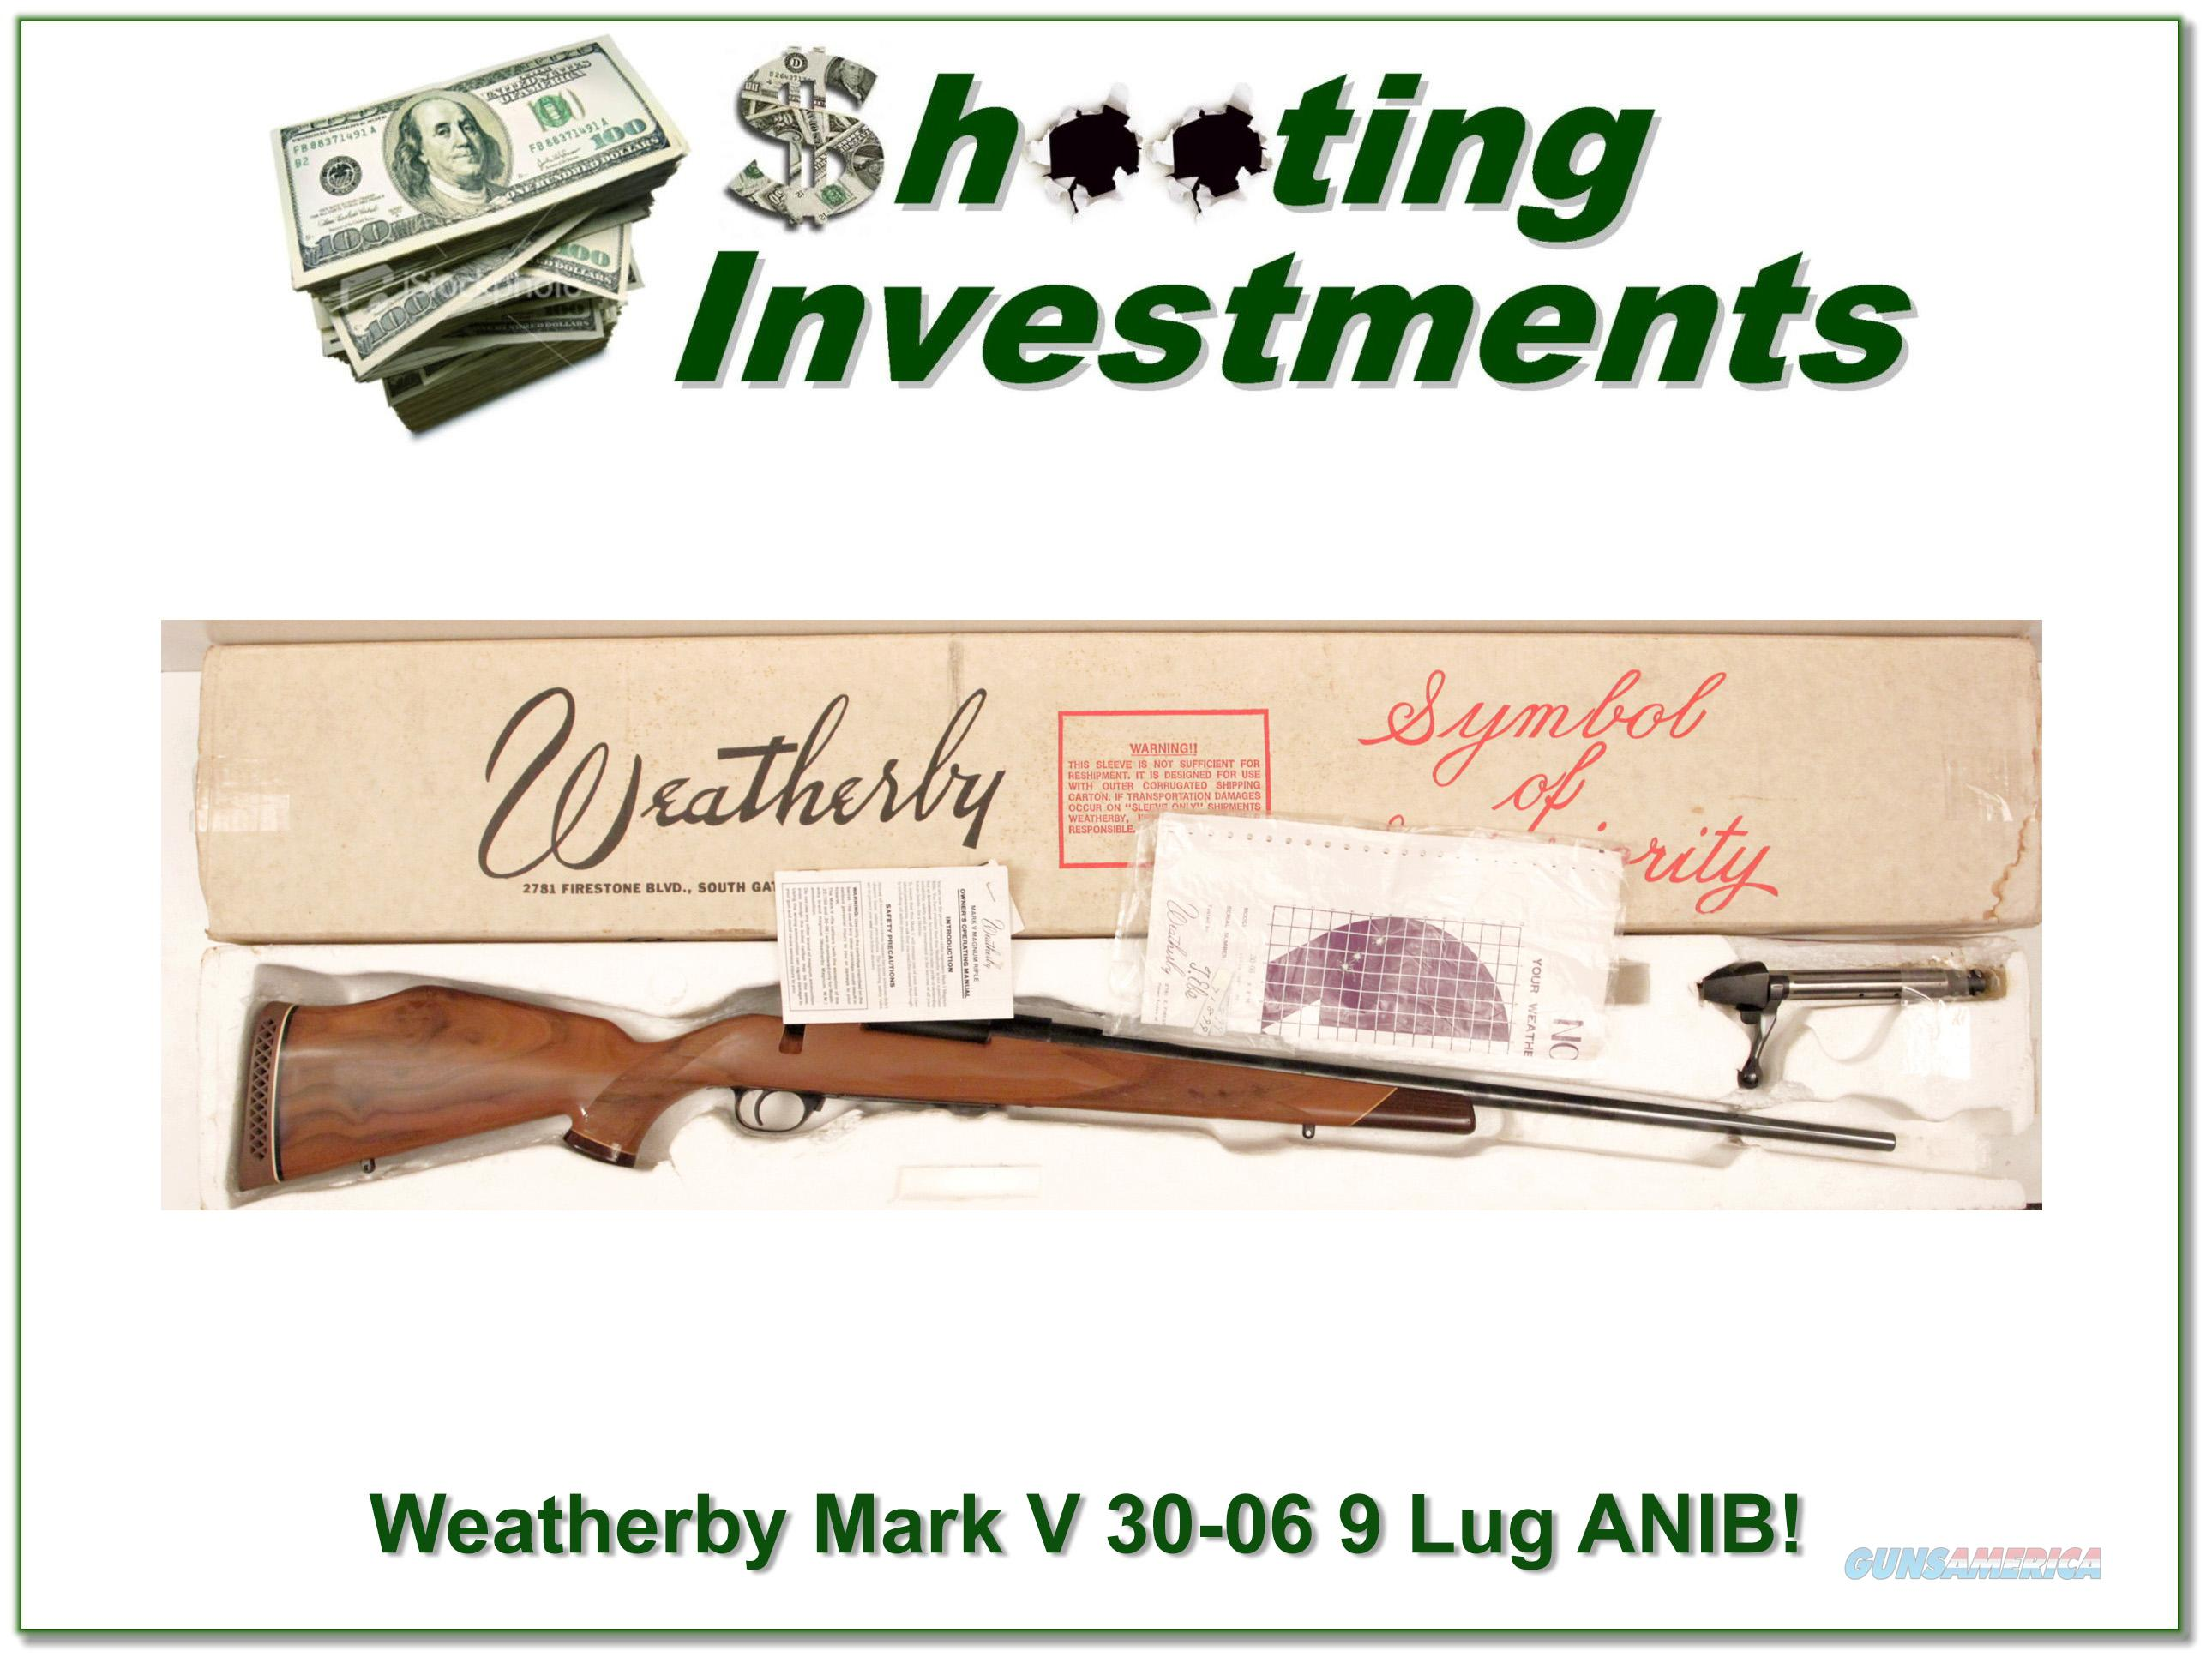 Weatherby Mark V Deluxe 9 Lug 30-06 ANIB!  Guns > Rifles > Weatherby Rifles > Sporting